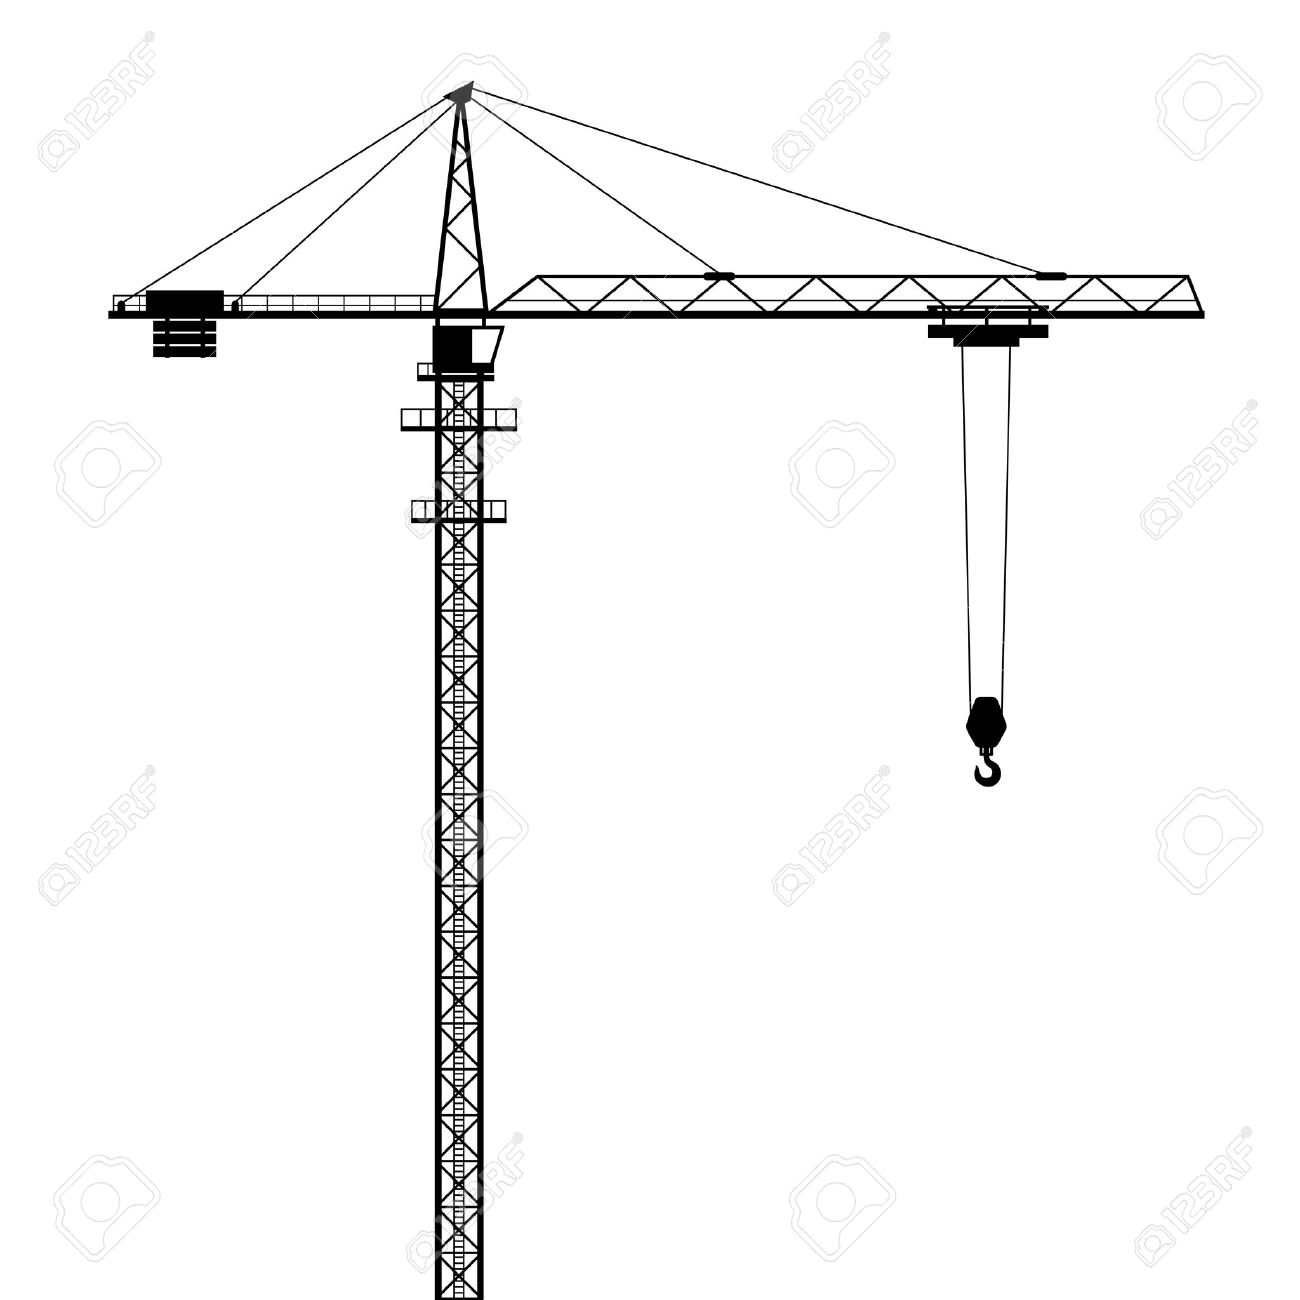 hight resolution of tower crane vector shape isolated on white background stock vector 49989988